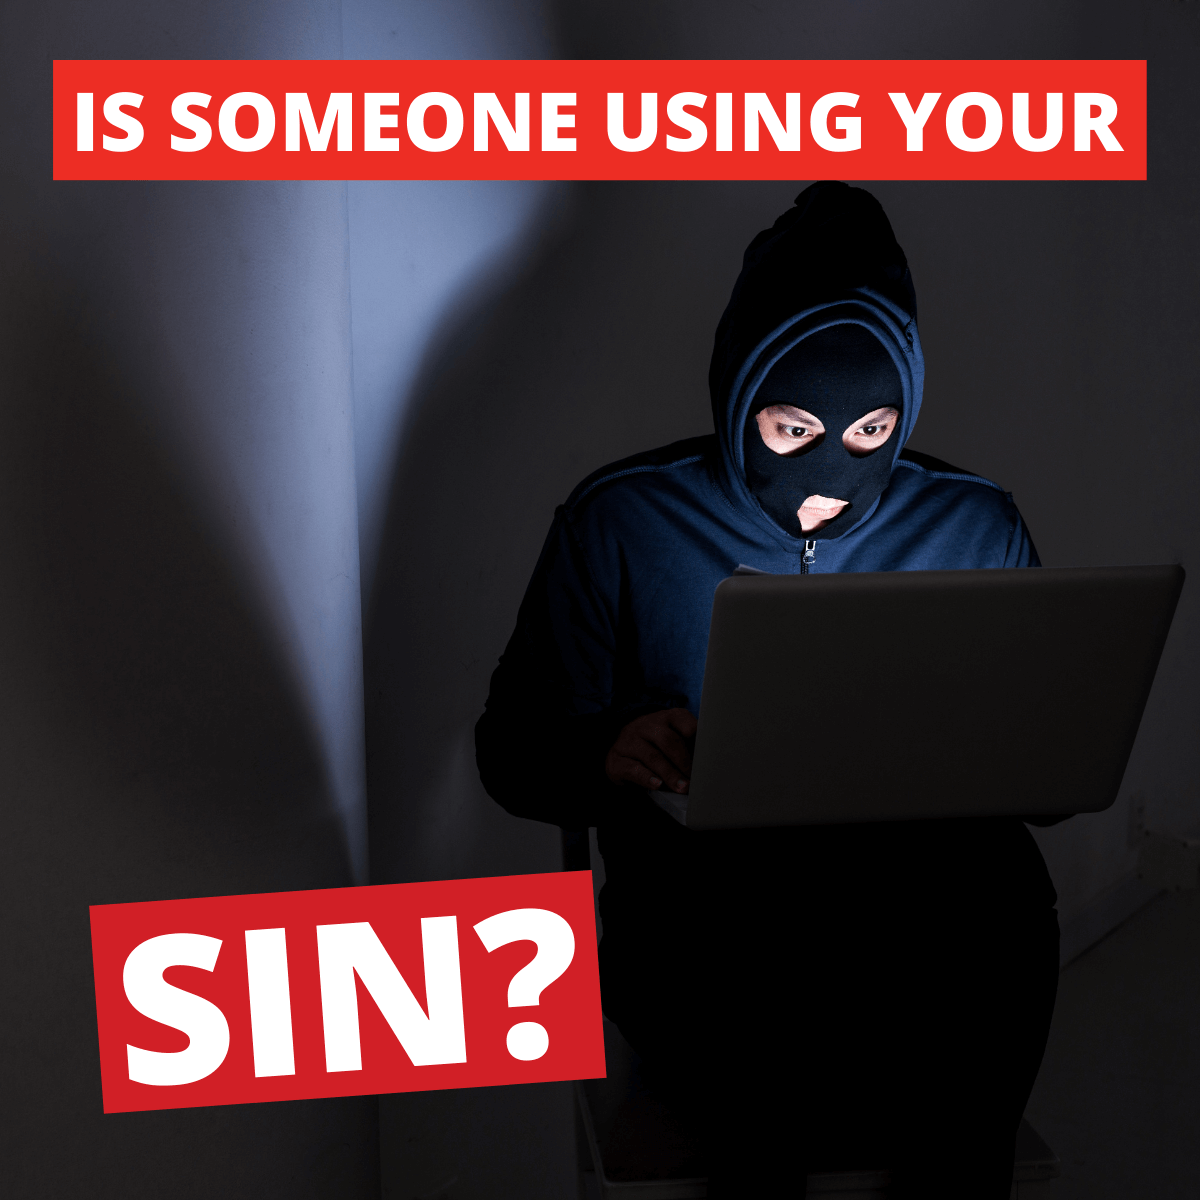 How Do I Know If Someone Is Using My SIN?